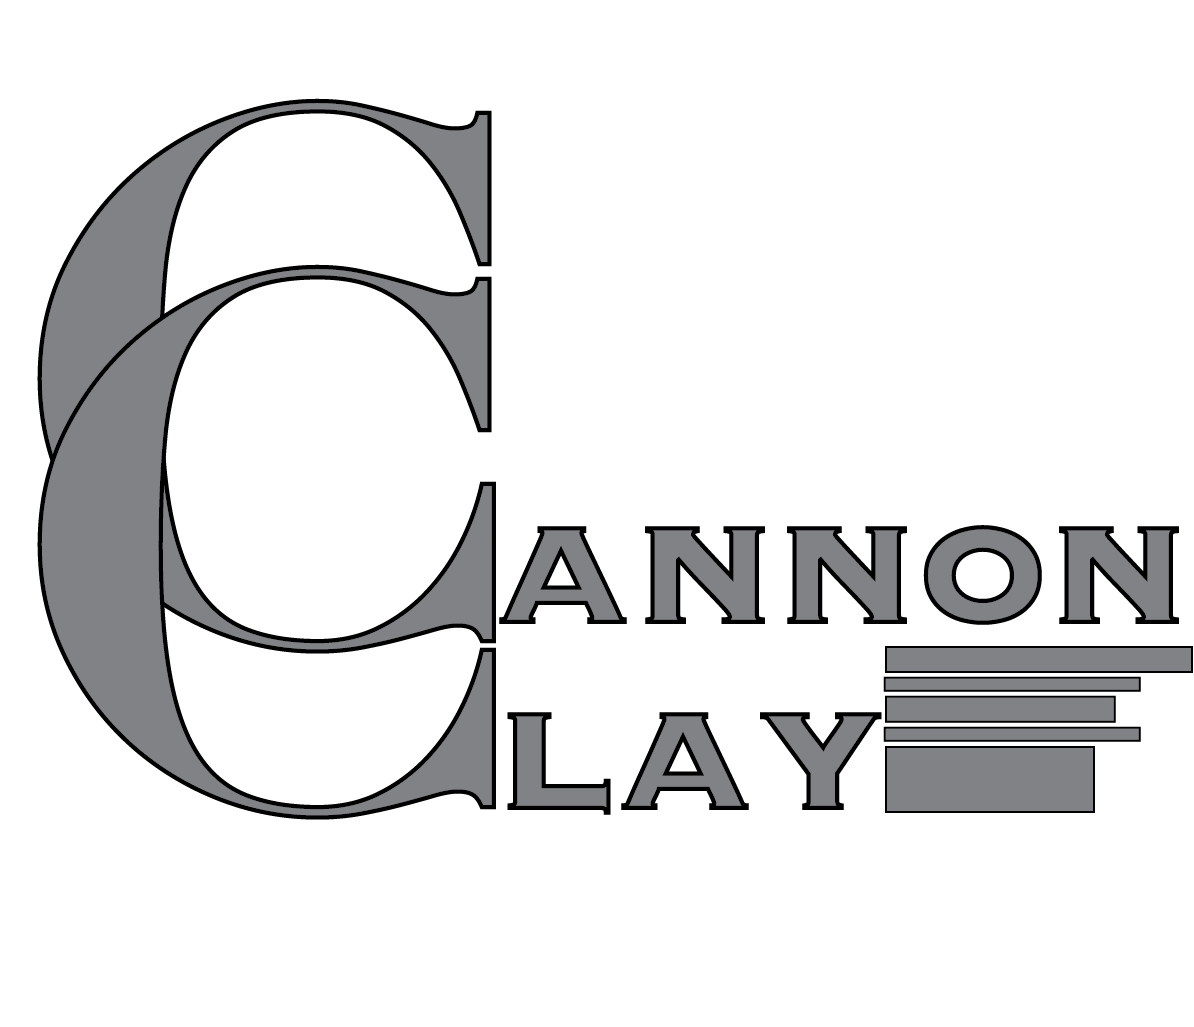 Cannon Clay